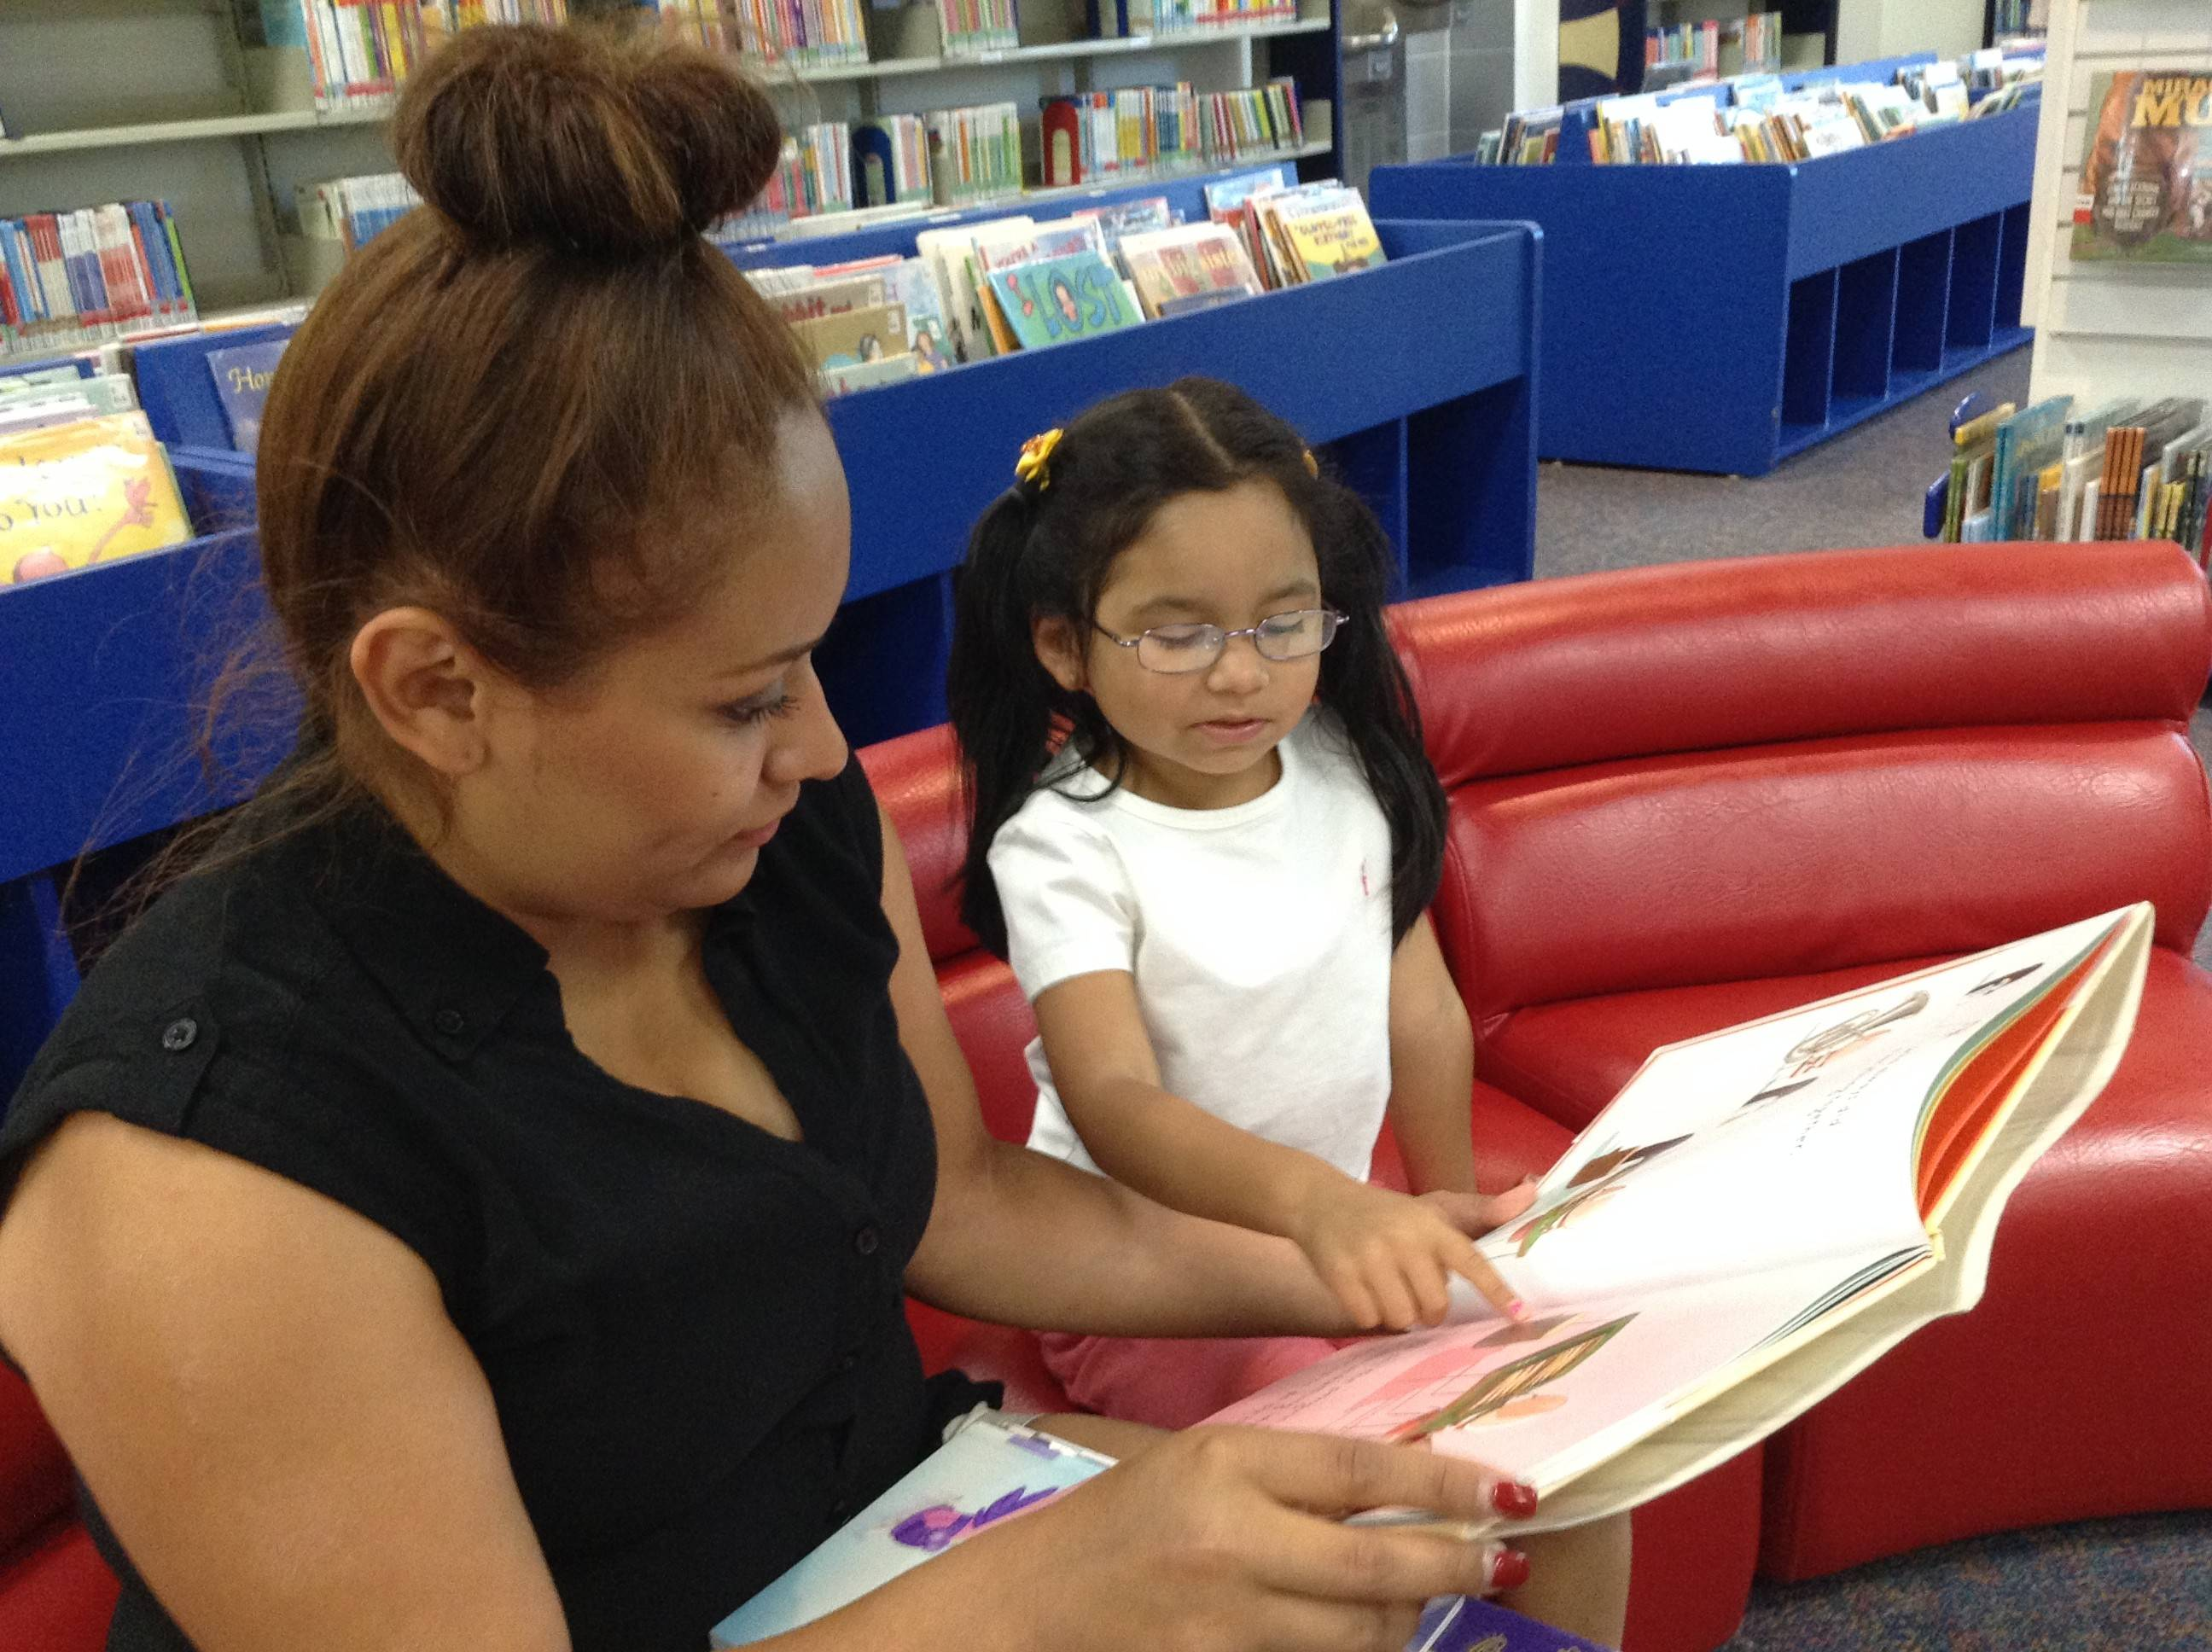 Brenda Hurtado reads with her 5-year-old daughter, Deevani, at the Fremont Public Library in Mundelein. The library is launching a program to encourage young children to read.